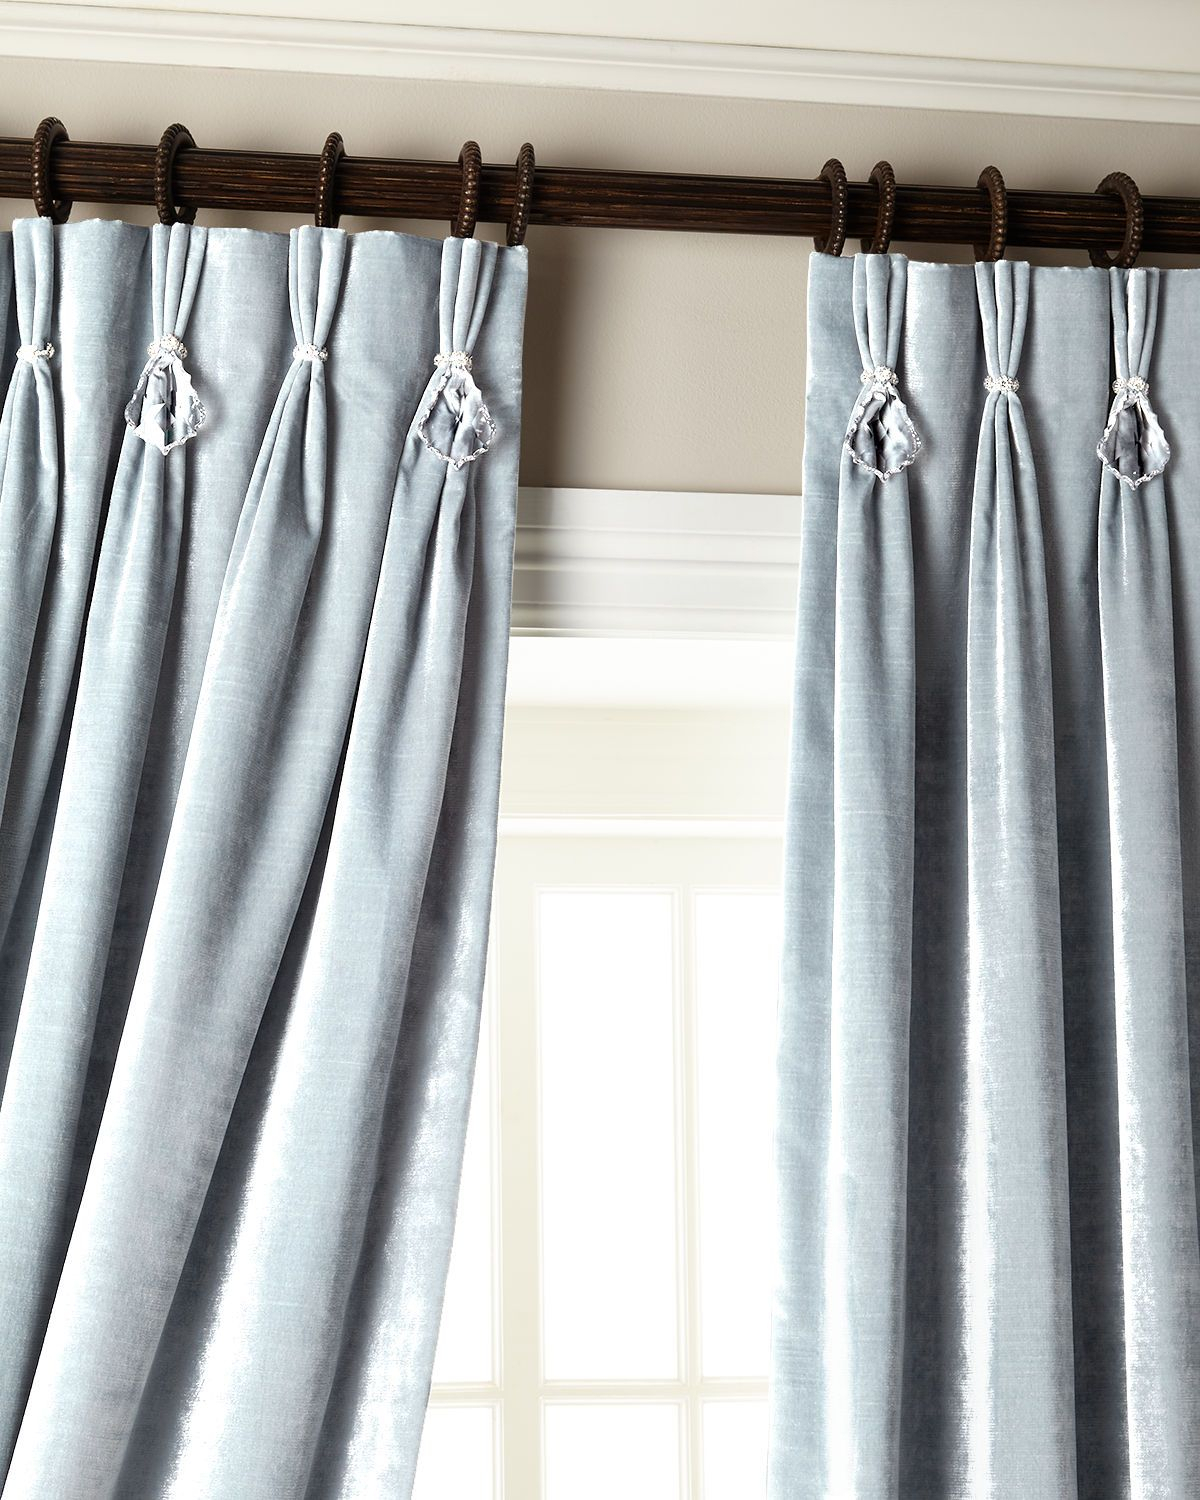 Burrigan Curtain Tier, Valance And Swag Set In 2019 | Room Throughout Cotton Classic Toast Window Pane Pattern And Crotchet Trim Tiers (View 3 of 20)